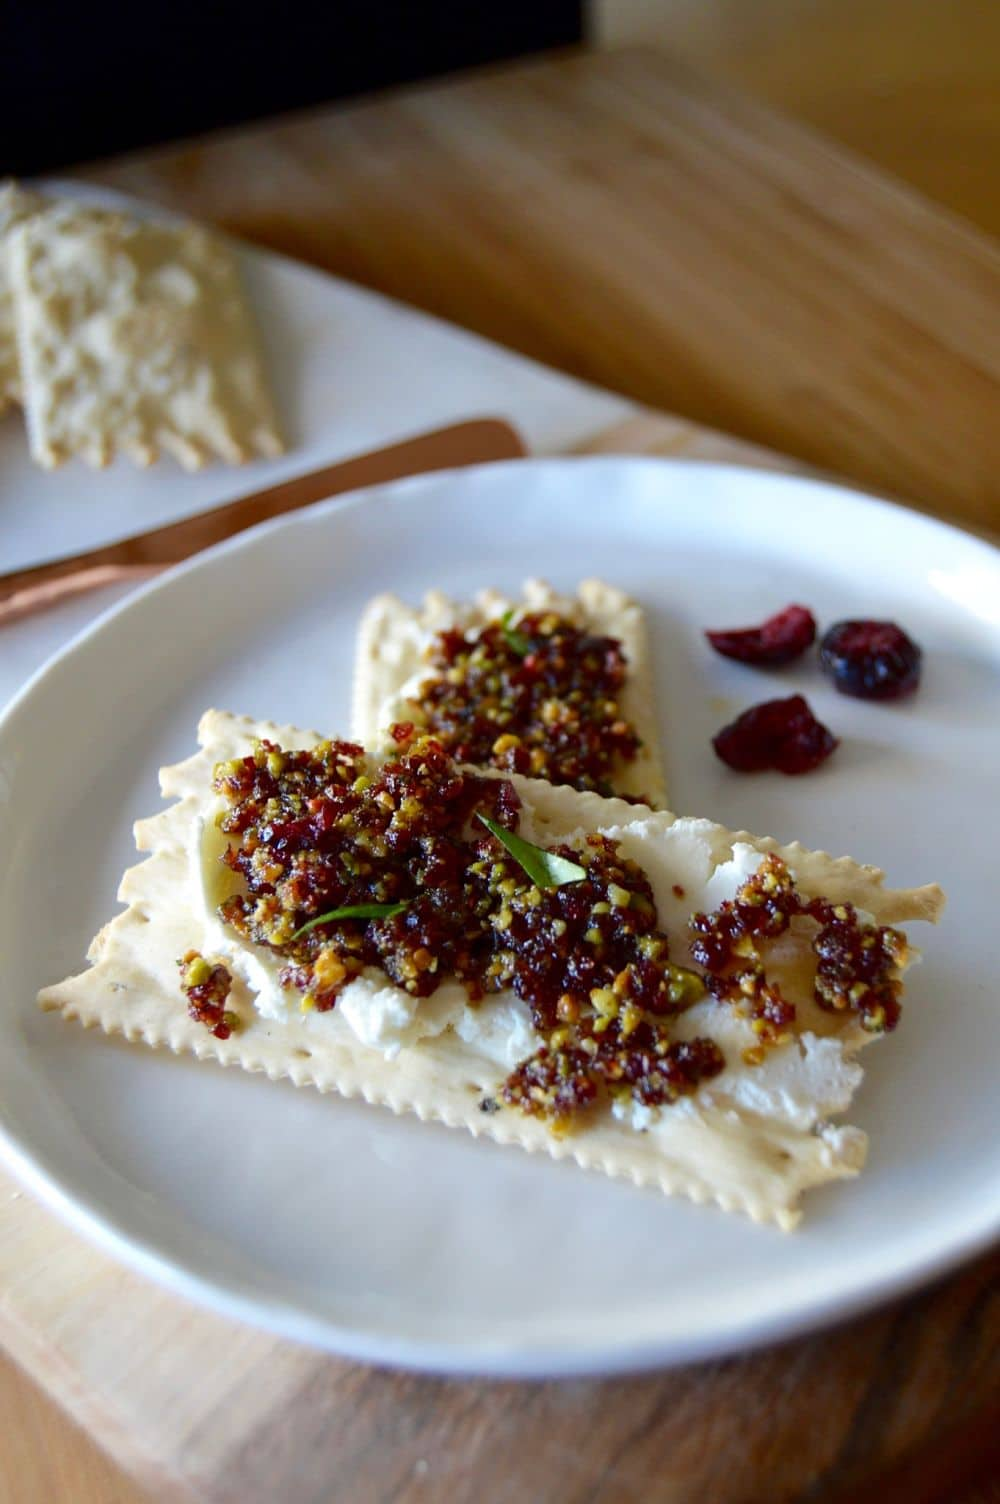 Looking for a festive spread for the holidays? This Cranberry Pistachio spread is not only easy peasy, but bursting with flavor and just the thing for a simple appetizer. Spread it on your favorite cracker and it's a mouthful of deliciousness.